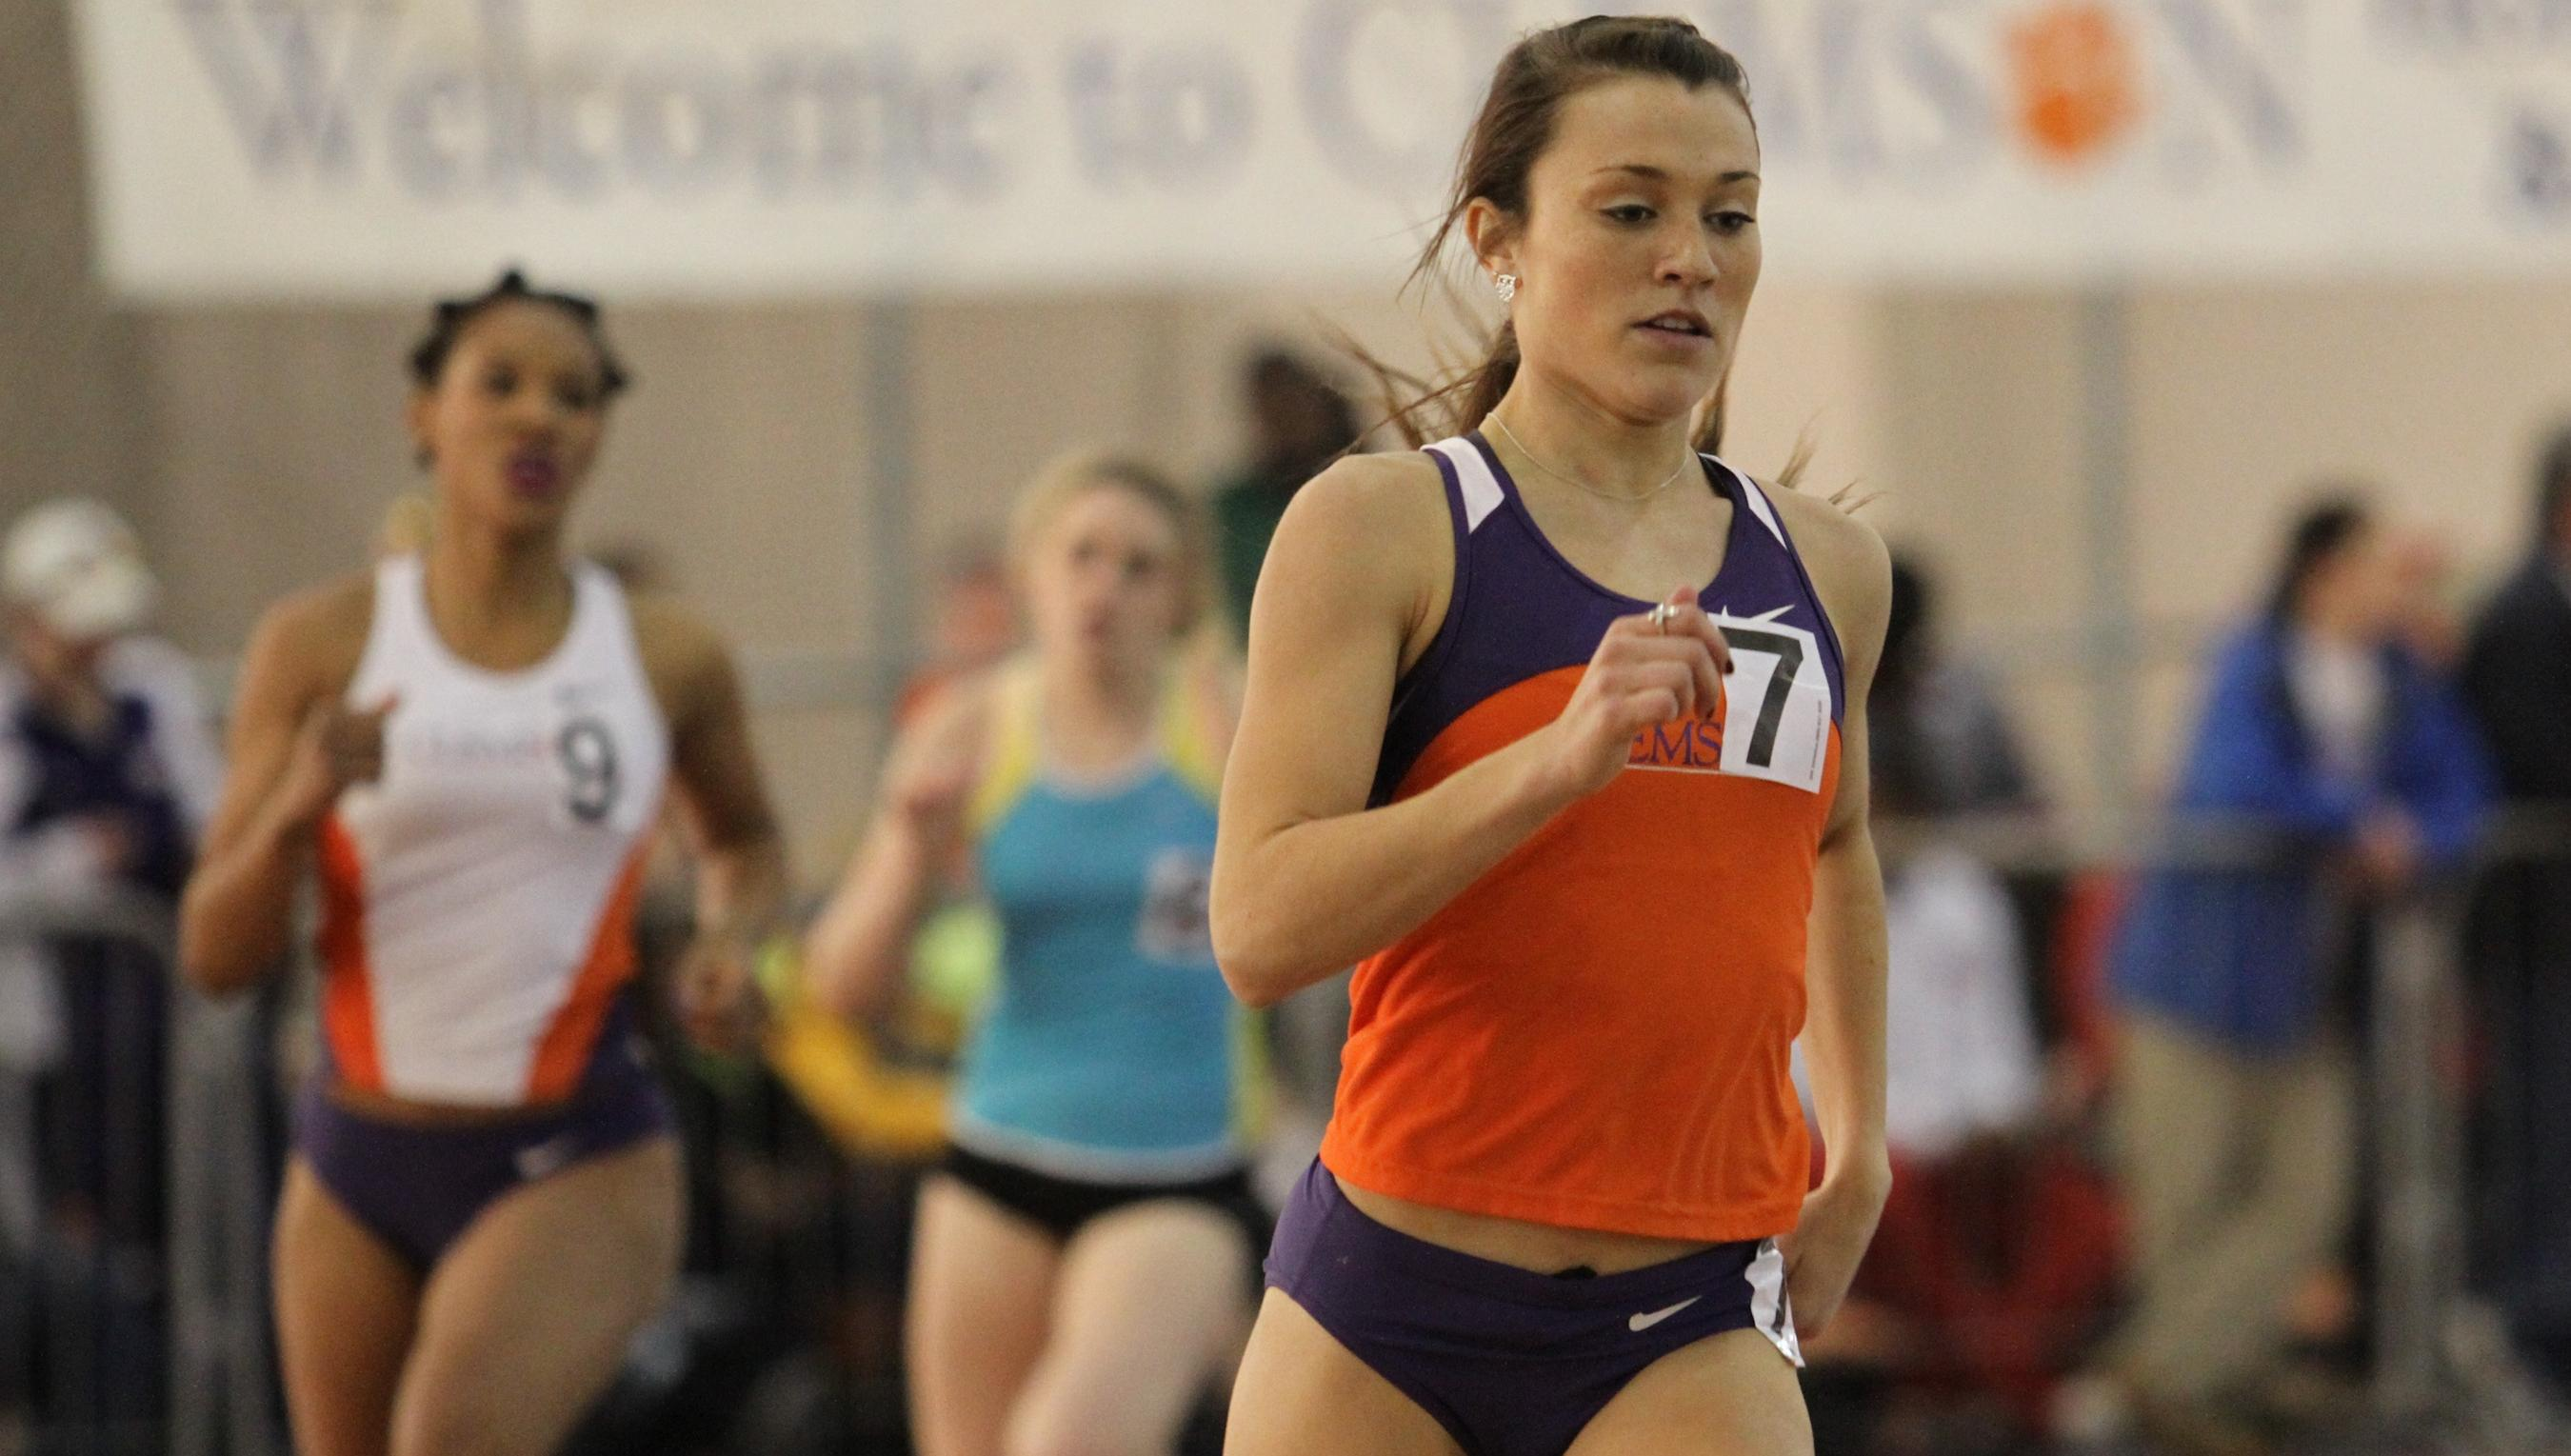 Clemson Finalizes Preparation for ACC Indoor Championships